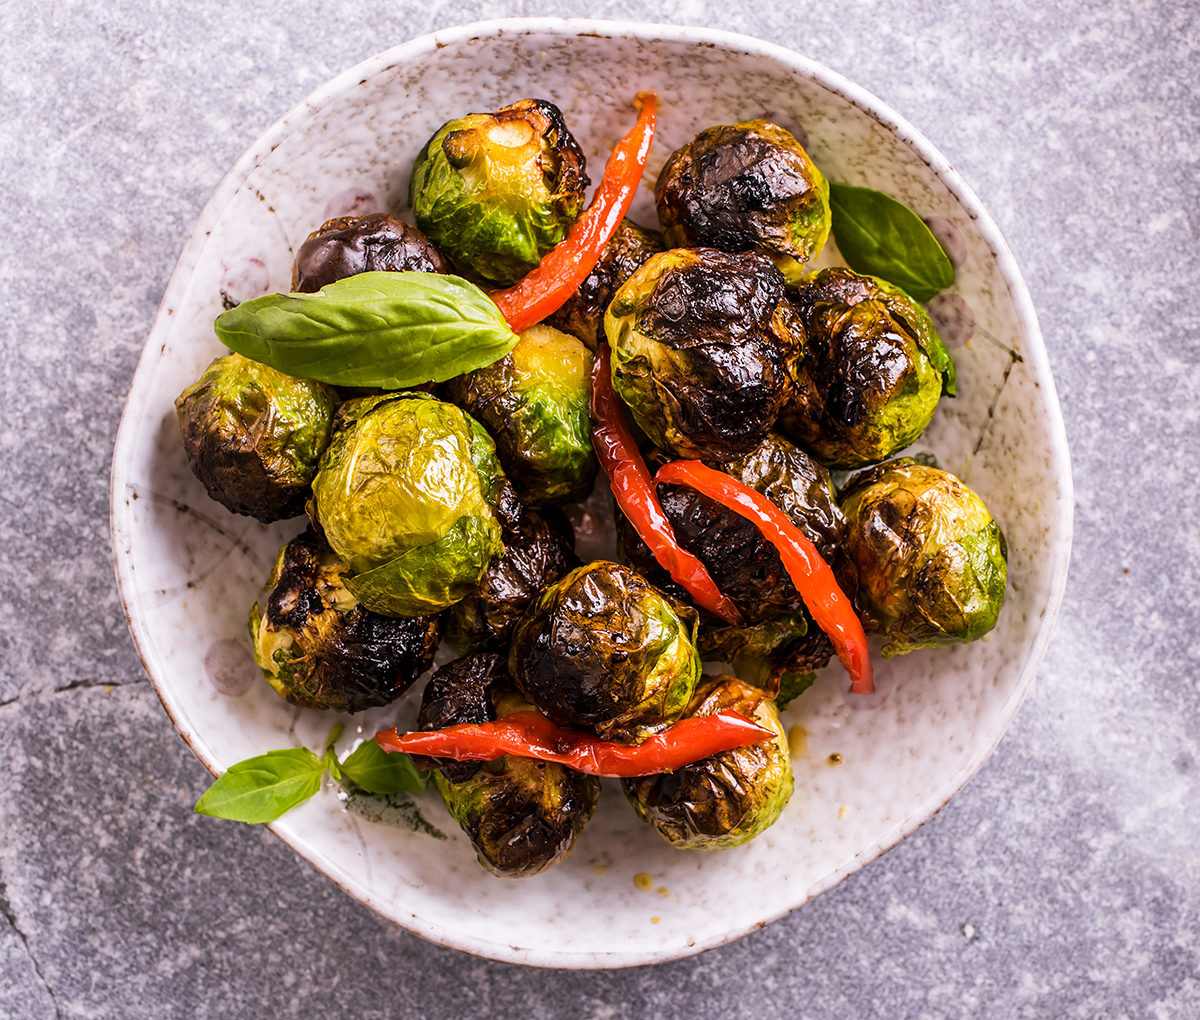 Roasted Brussels sprouts in plate on stone background. Top view. Closeup